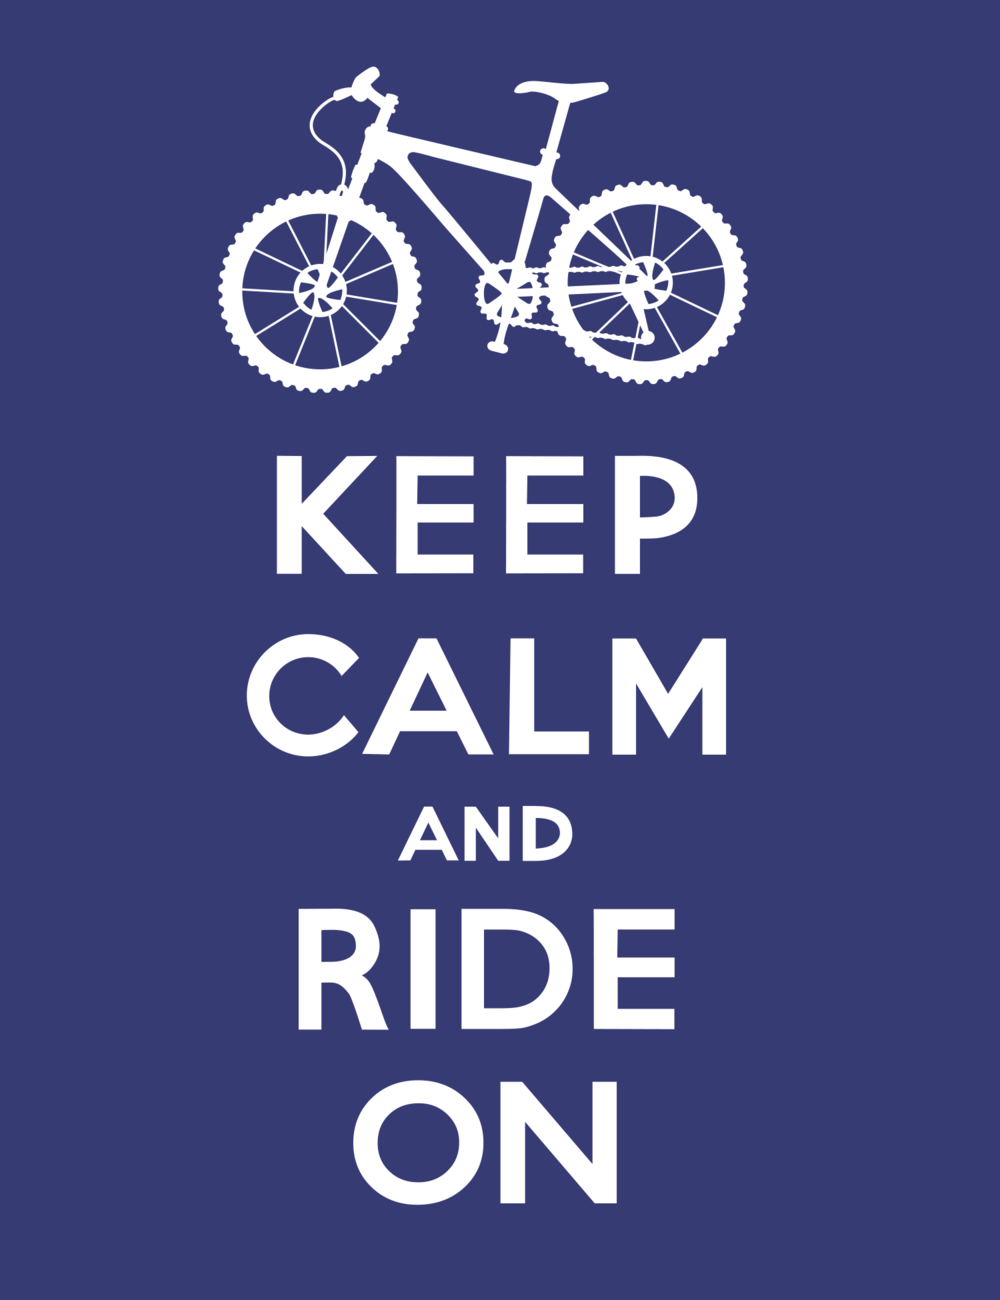 keep calm_ride_on_violet_andi_bird.png